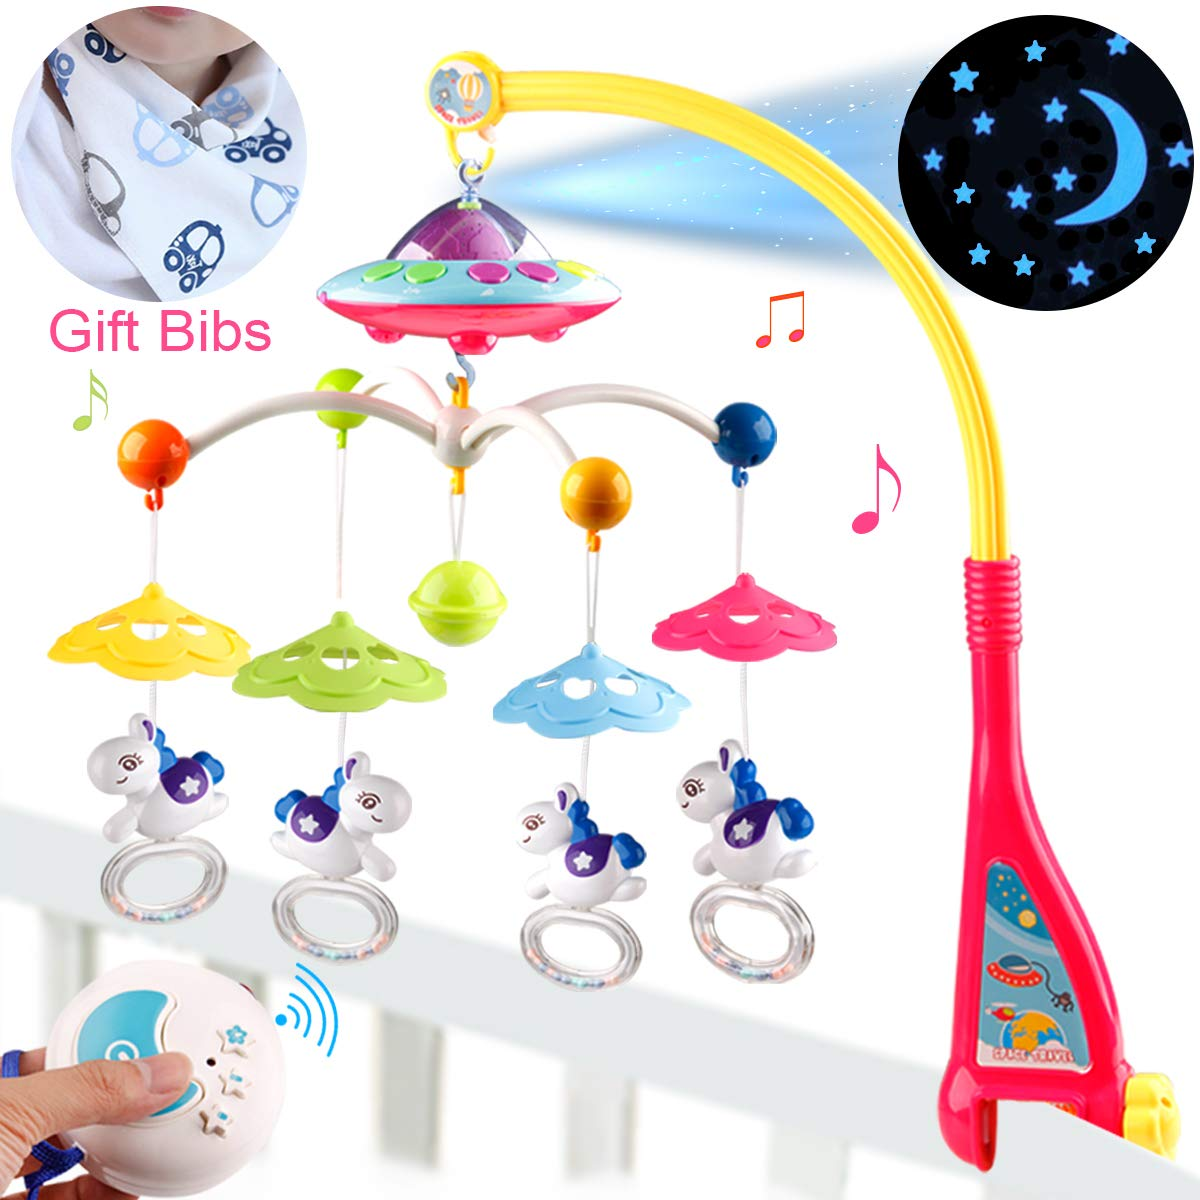 BOBXIN Baby Musical Crib Mobile with Projector,Light and 108 Melodies Music Box,Remote Control and Hanging Rattles Rotating,Gift for Newborn(with Bibs)